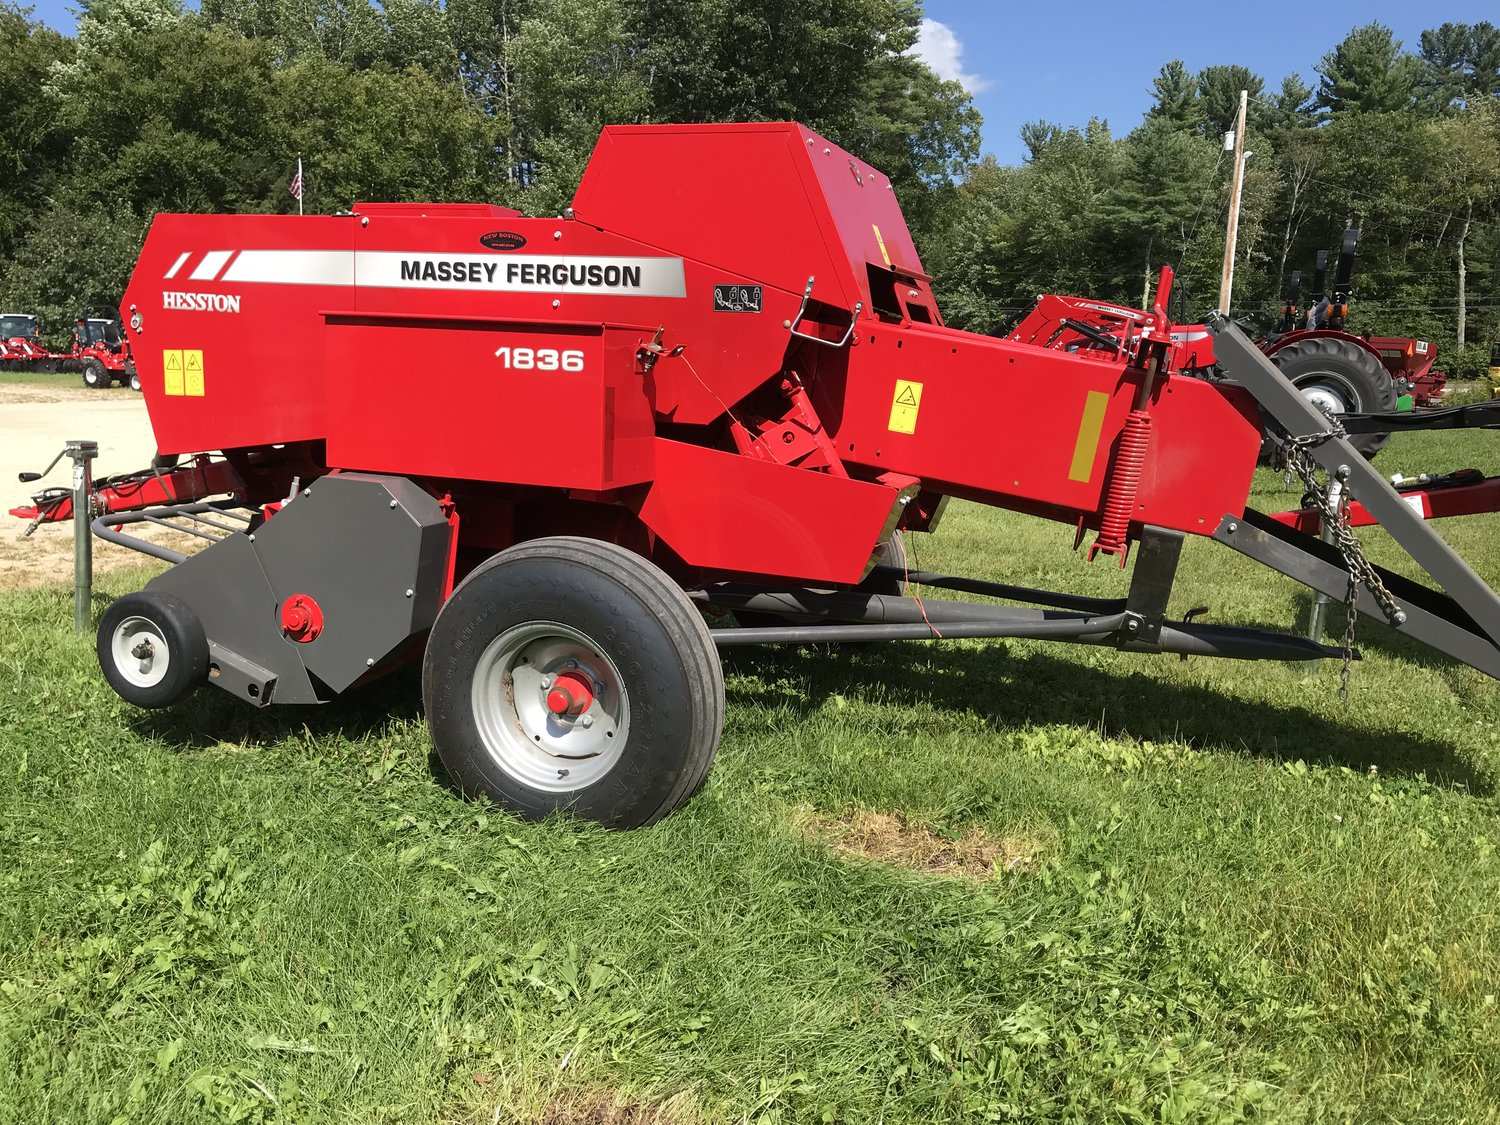 Massey Ferguson USED 1836 Small Square Baler $16,000 — New Boston Tractor